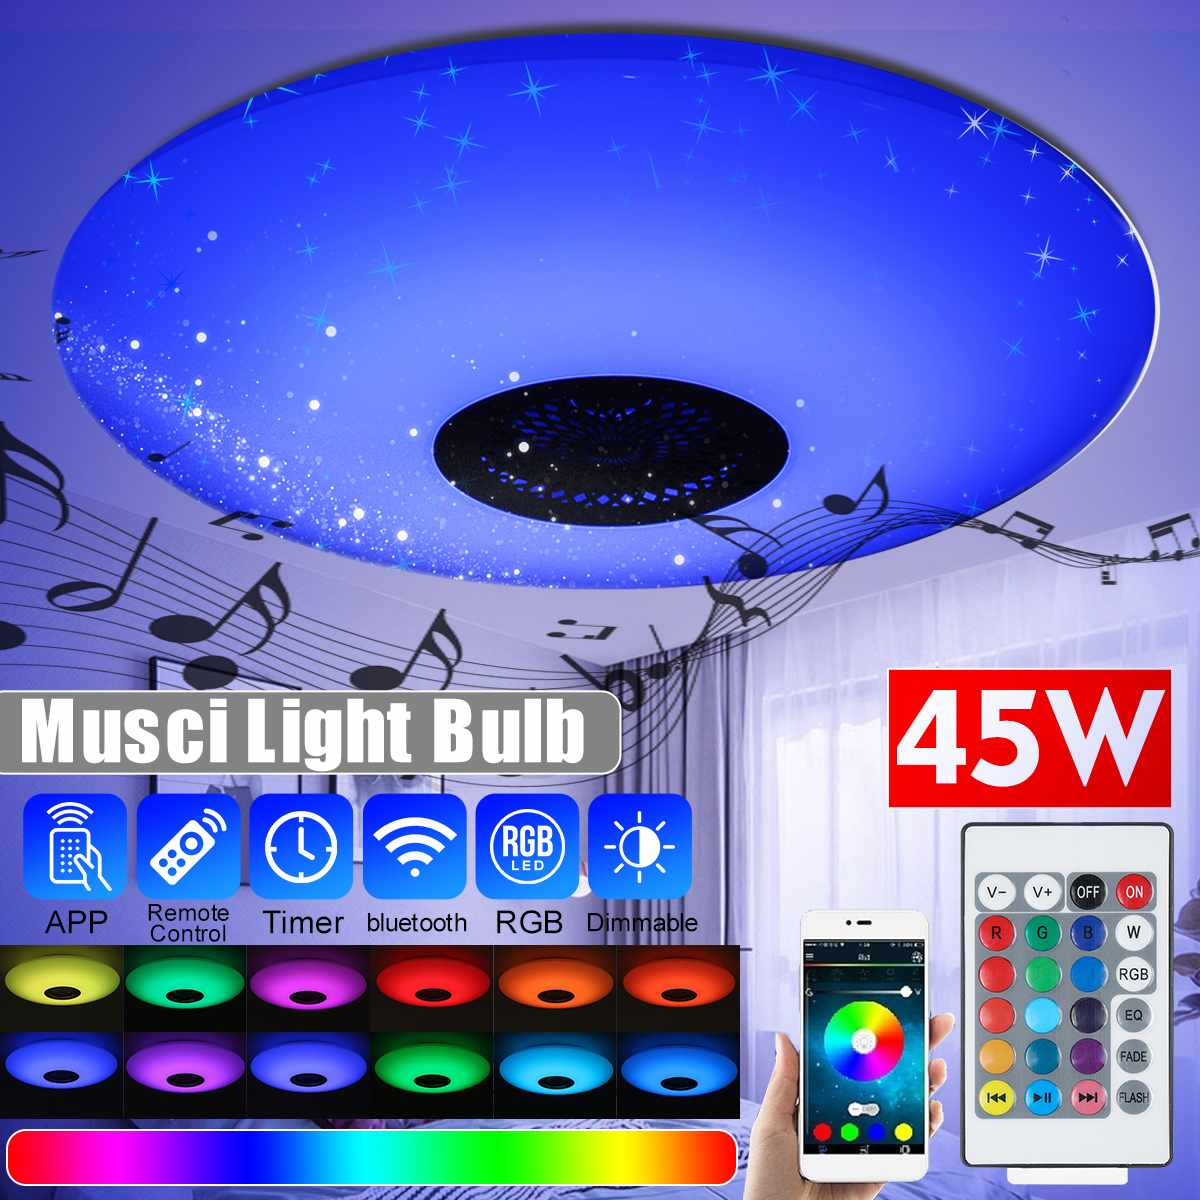 Modern RGB LED Ceiling Lights Home Lighting 45W APP Bluetooth Music Light E27 Bedroom Lamps Smart Ceiling Lamp+Remote Control